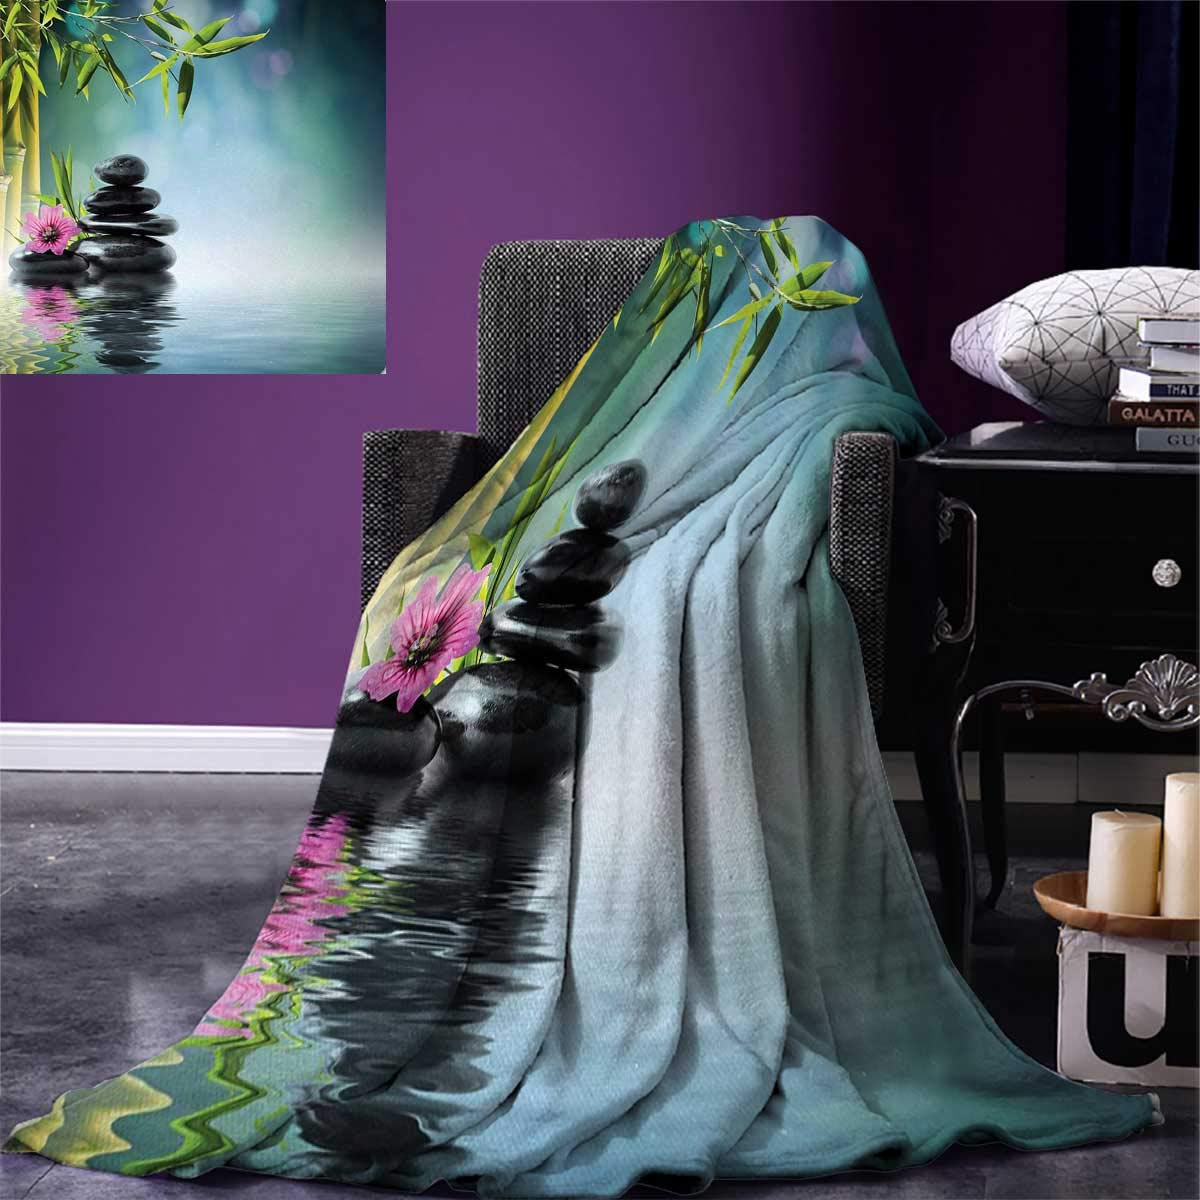 Zen Garden Digital Printing Blanket Pink Flower Spa Stones and Bamboo Tree on The Water Relaxation Theraphy Peace Summer Quilt Comforter 80''x60'' Multicolor